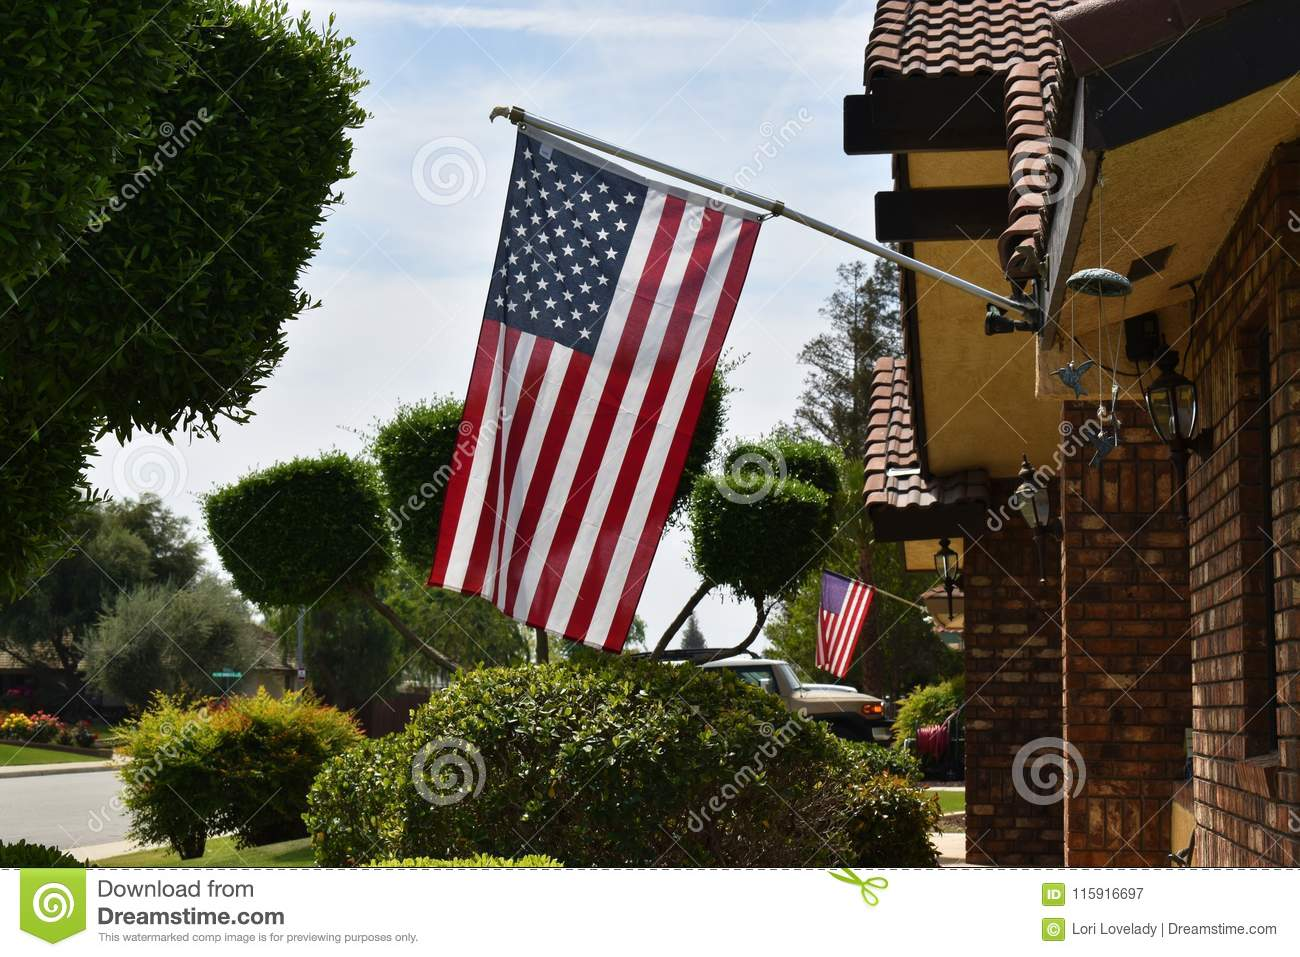 Patriotic American Flags Hanging From Neighboring Houses